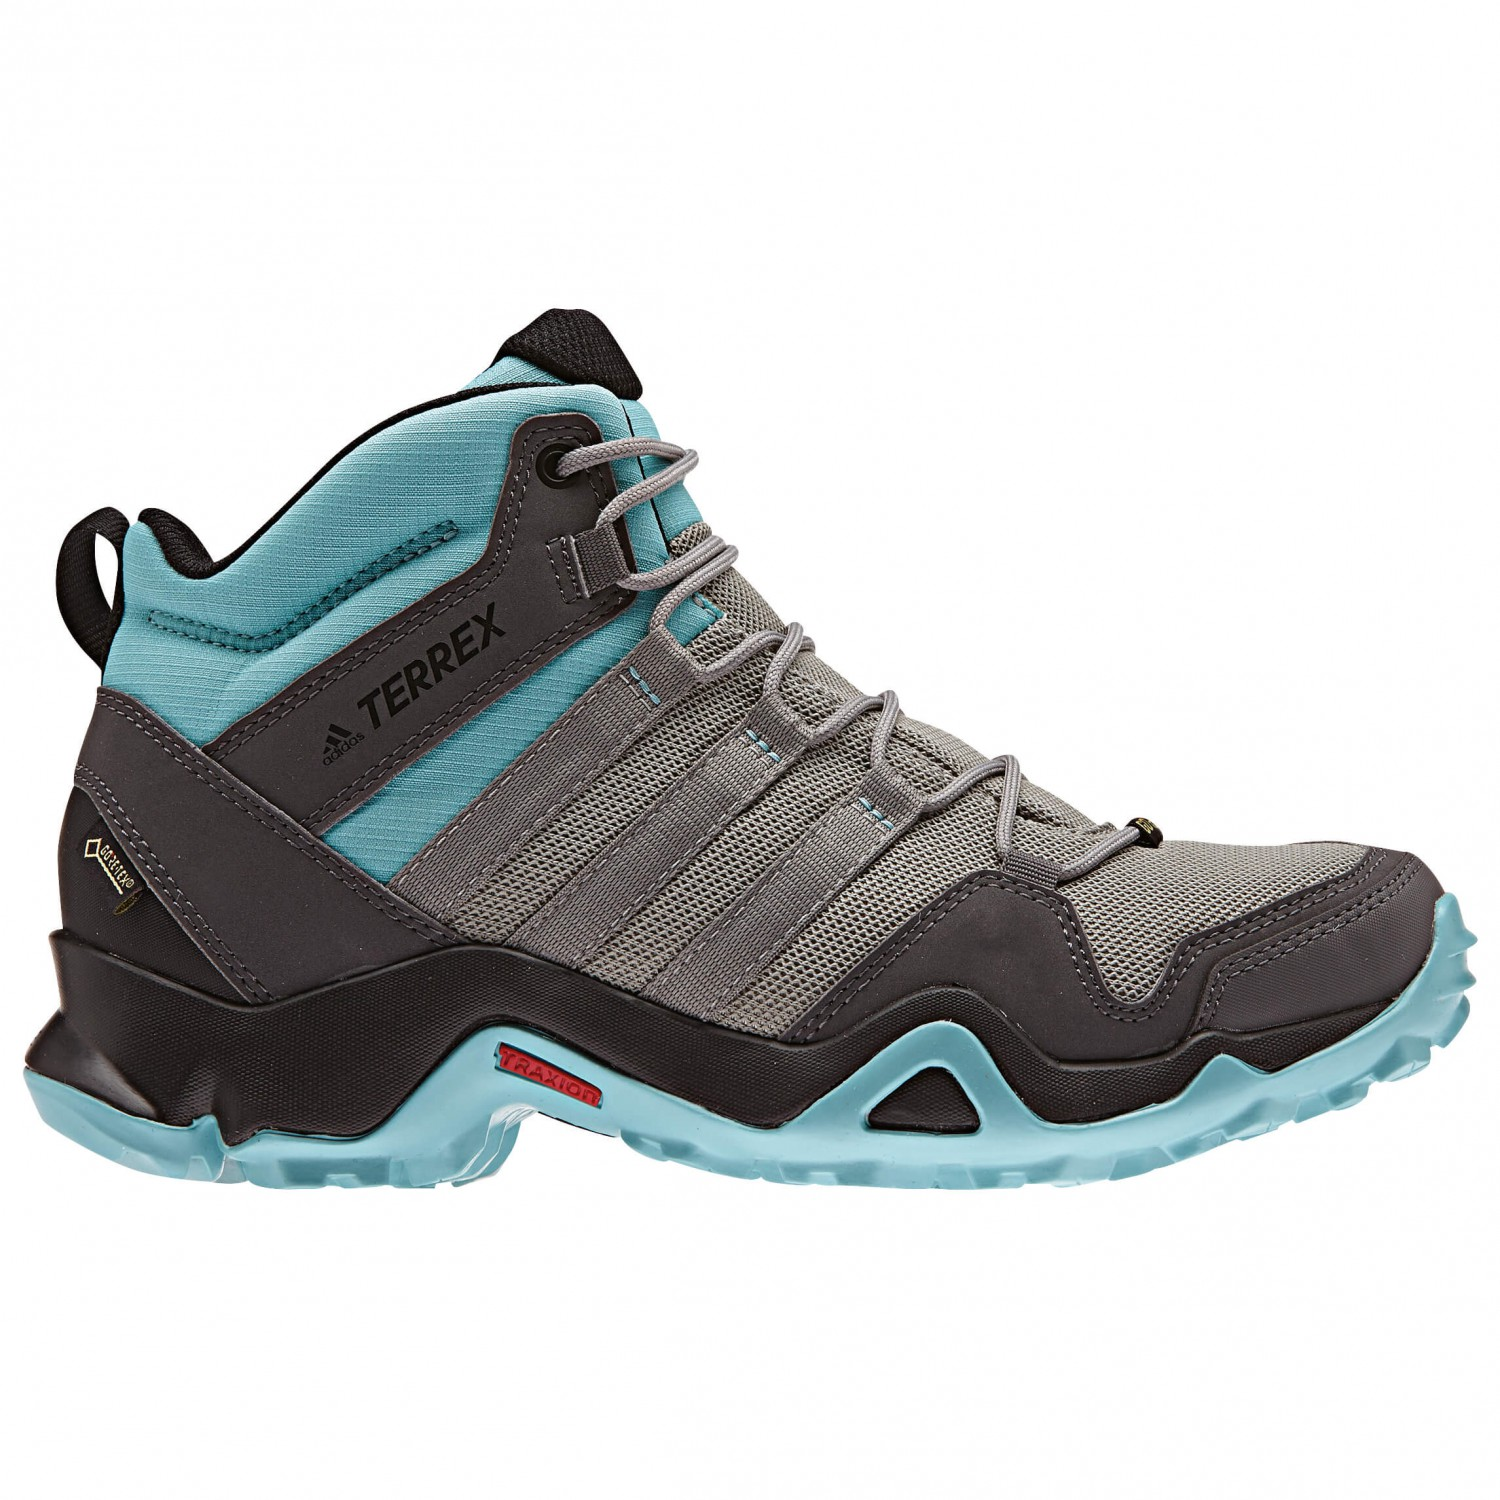 detailed look 05cb5 ed0ff Adidas Terrex AX2R Mid GTX - Walking Boots Women s   Buy online    Alpinetrek.co.uk